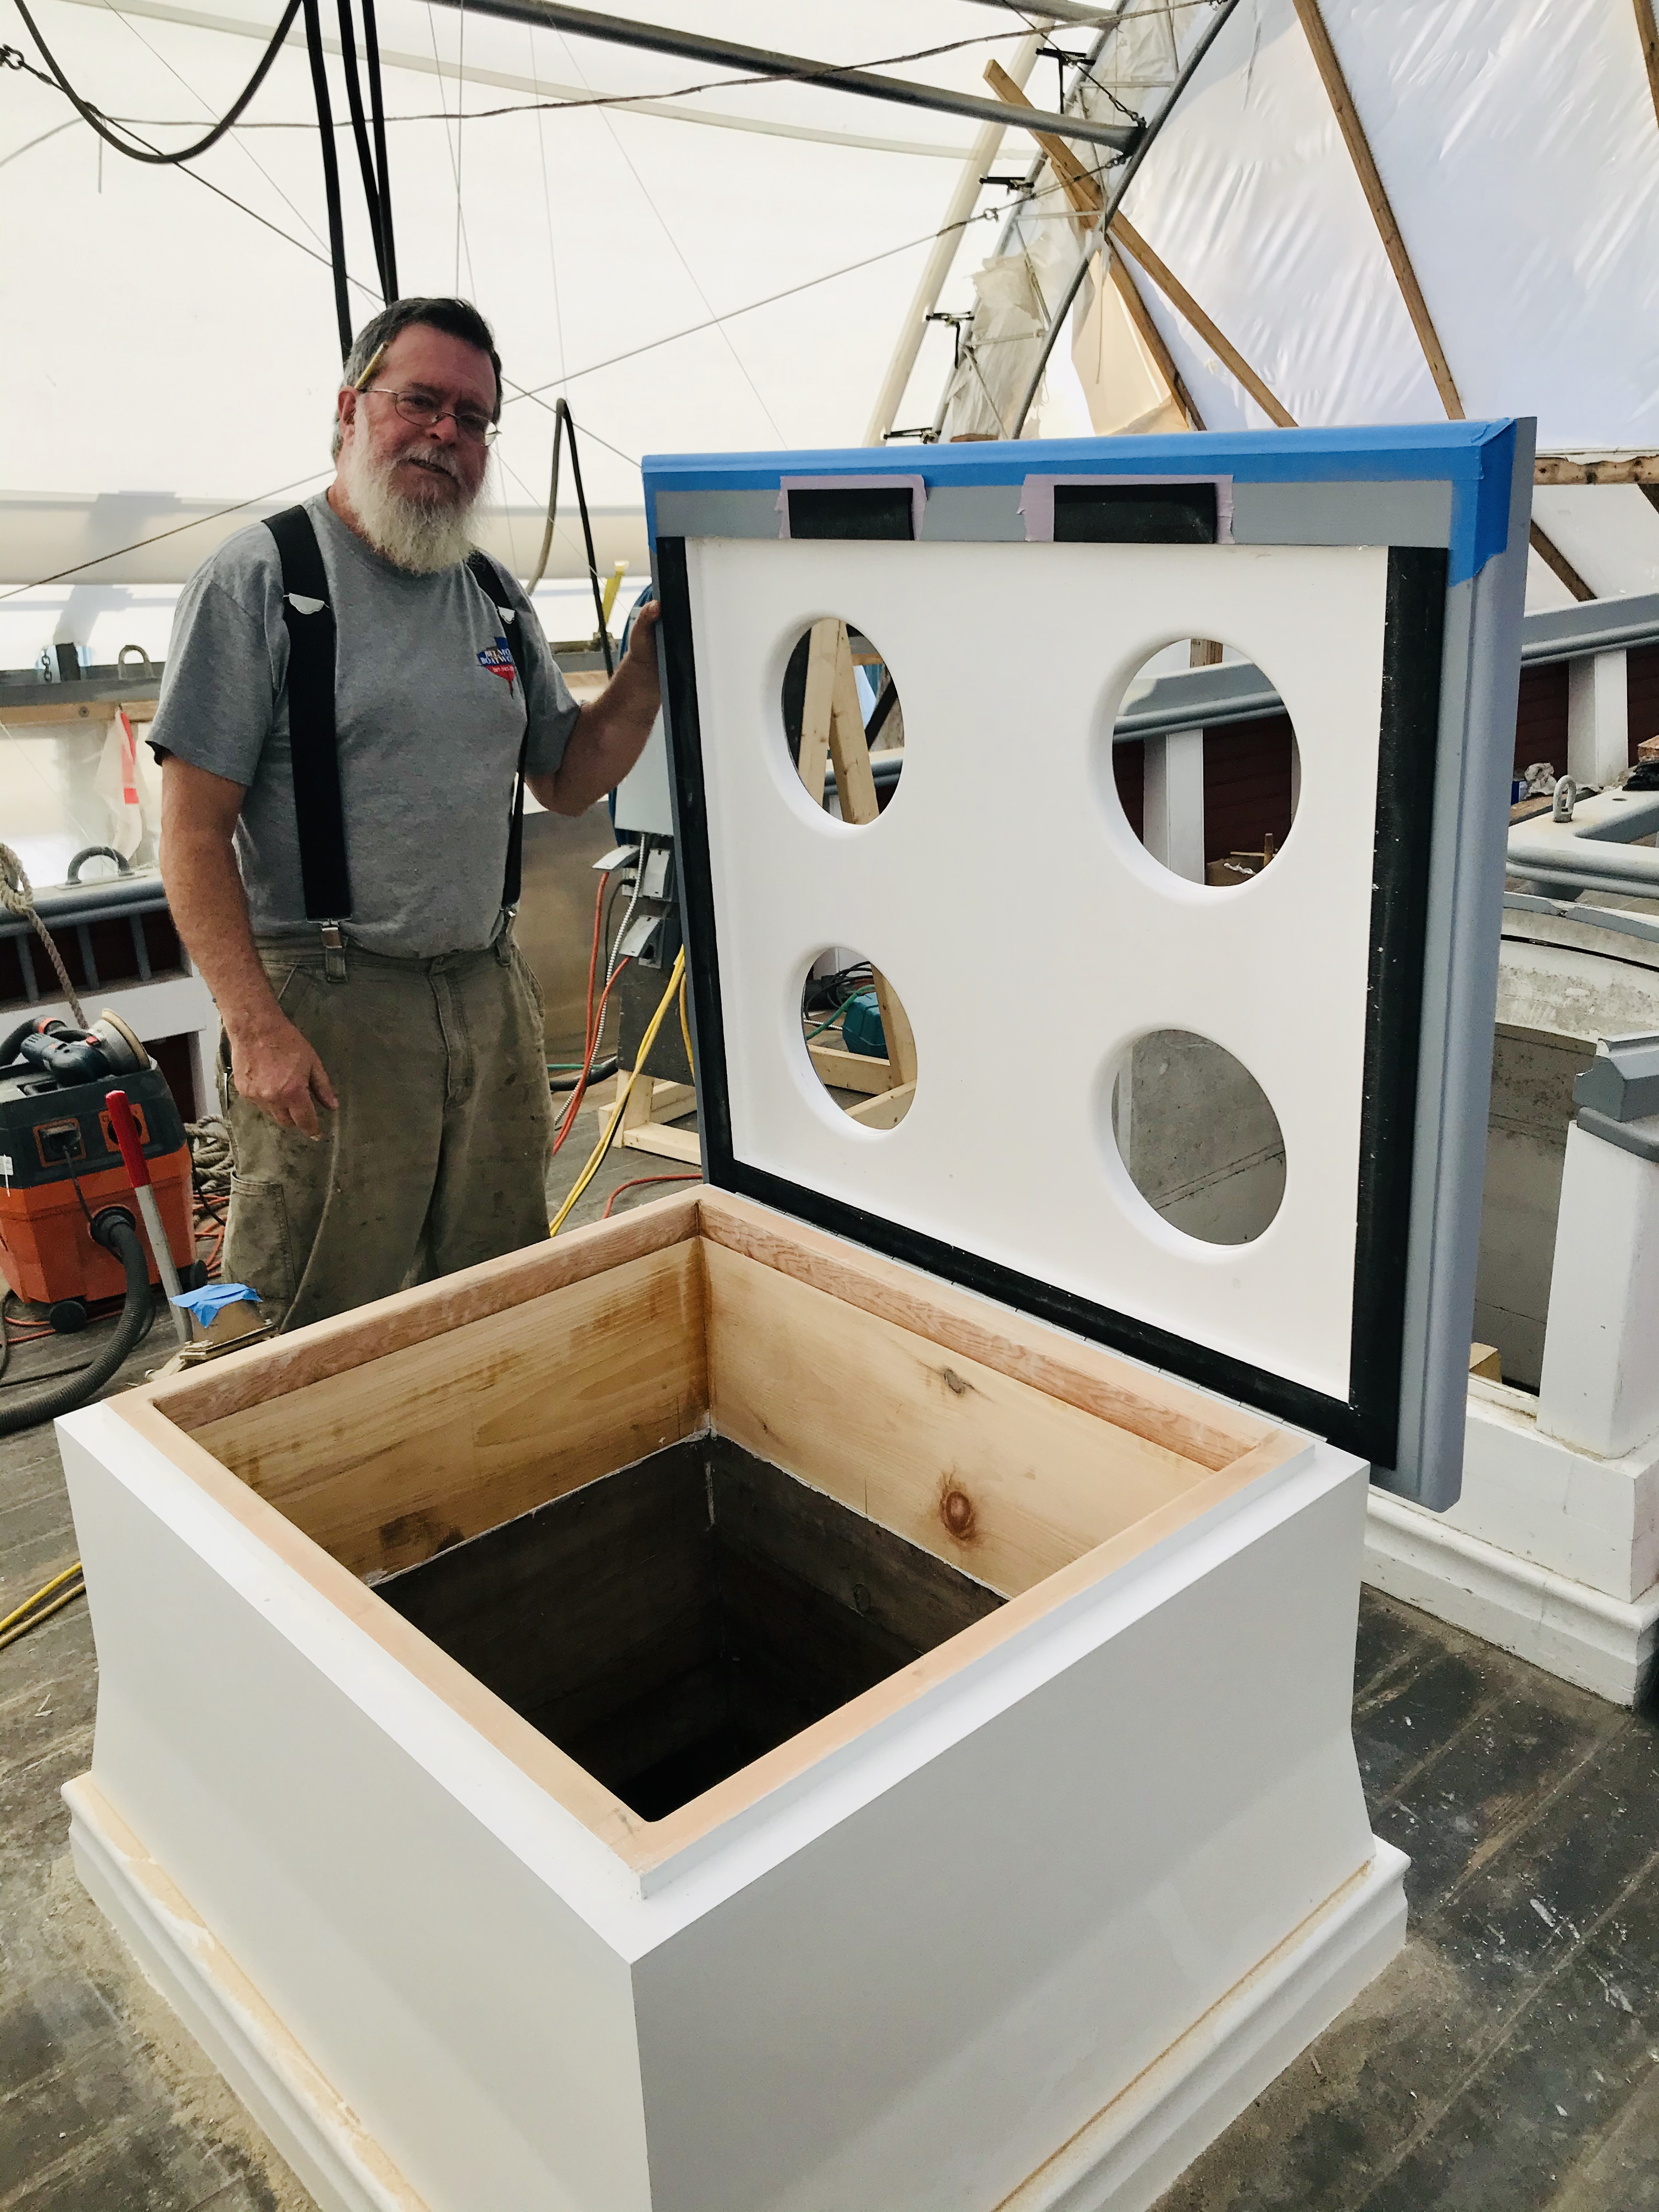 Lead Shipwright David Short showing off the newly refurbished Galley Hatch.